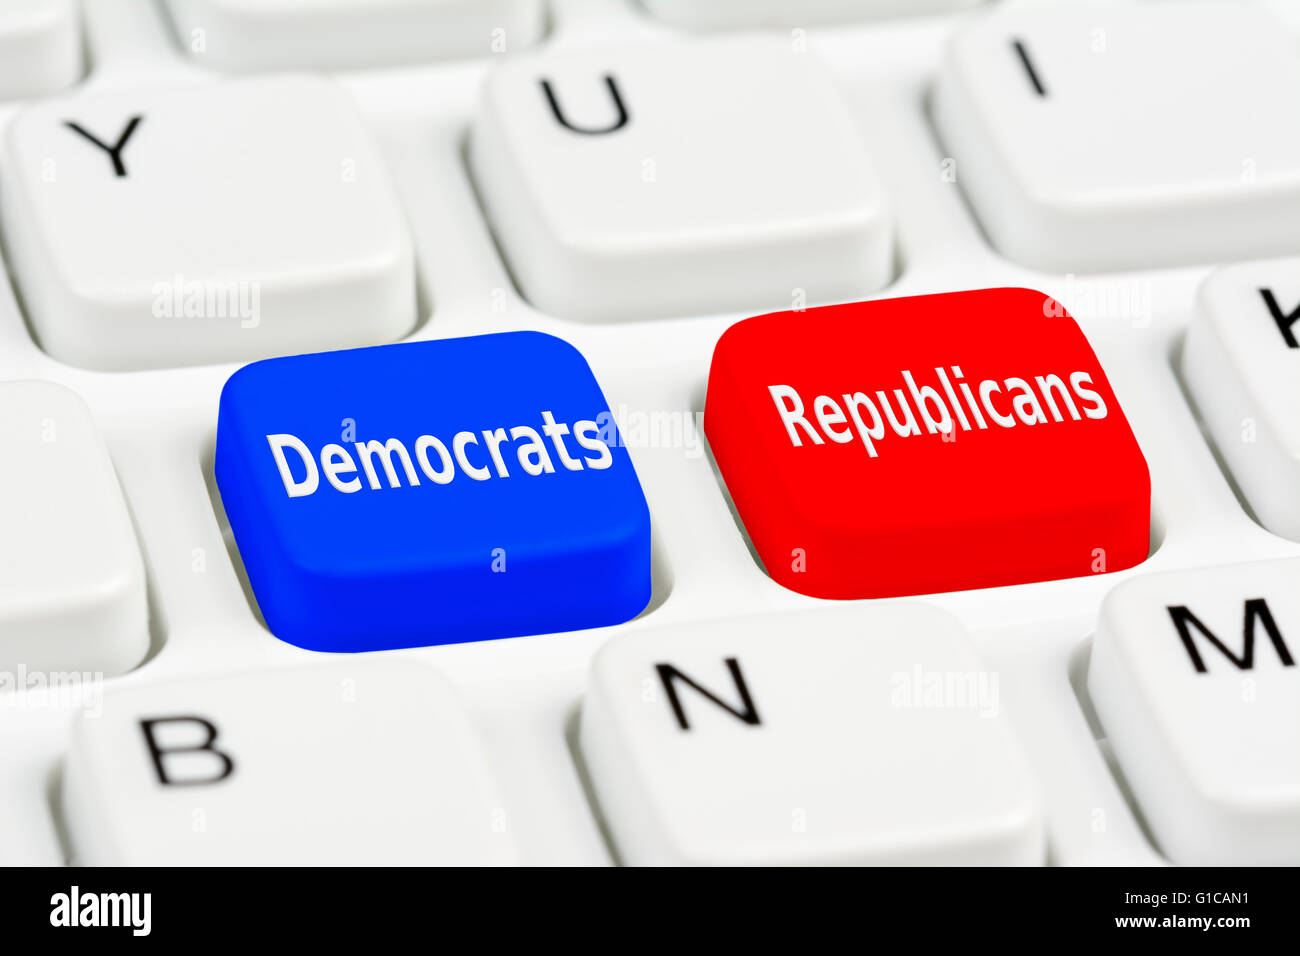 Democrats and Republicans voting buttons on a computer keyboard. - Stock Image